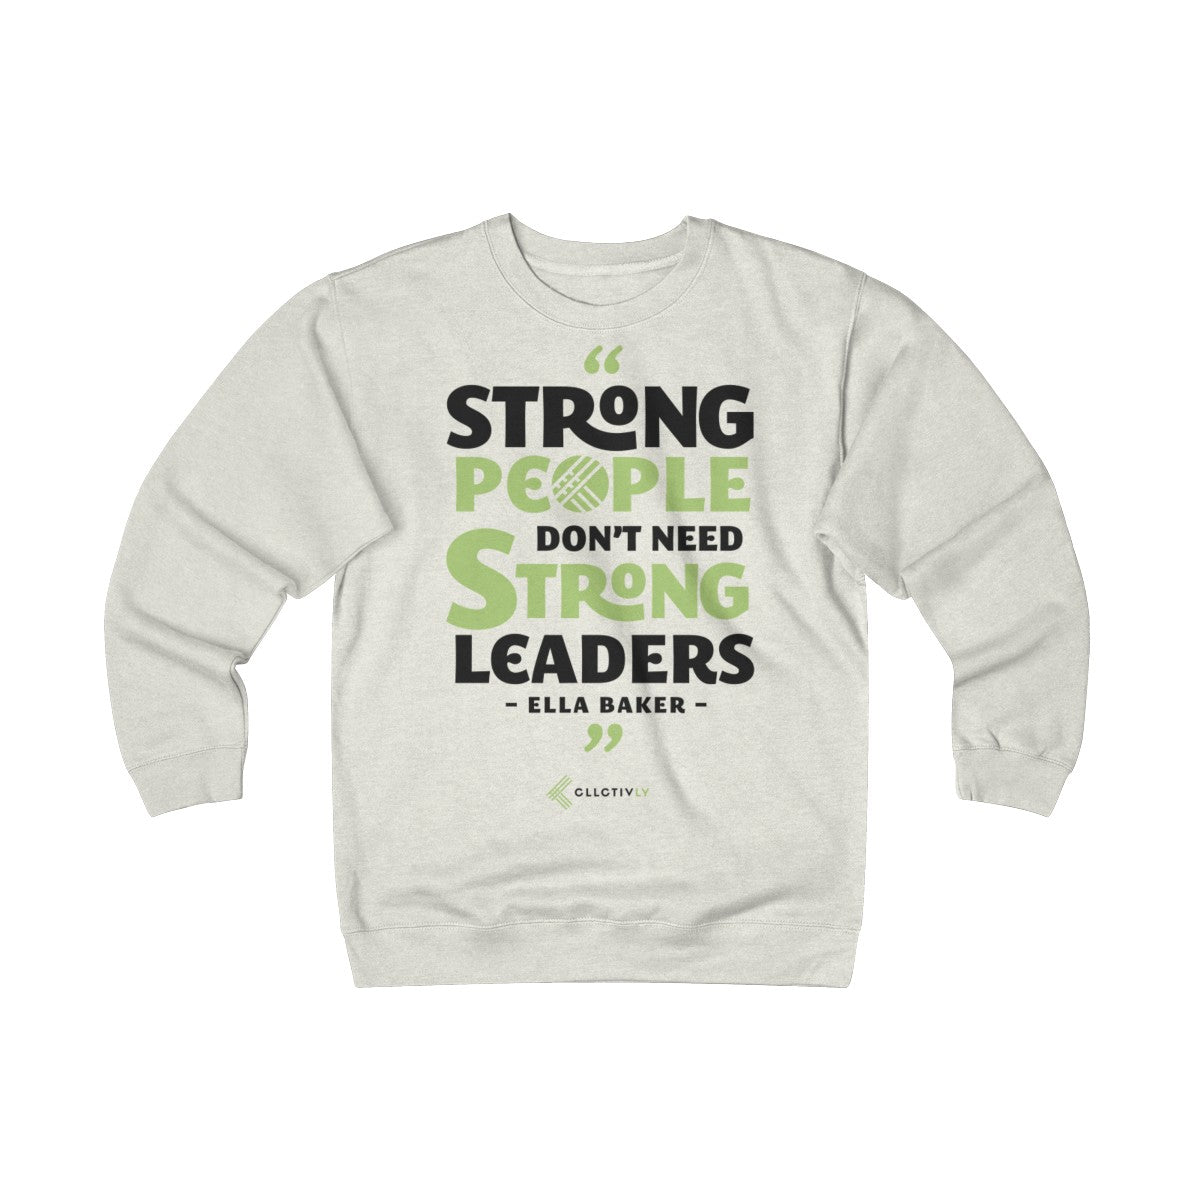 Ella Baker - Strong People Don't Need Strong Leaders - Unisex Heavyweight Fleece Crew